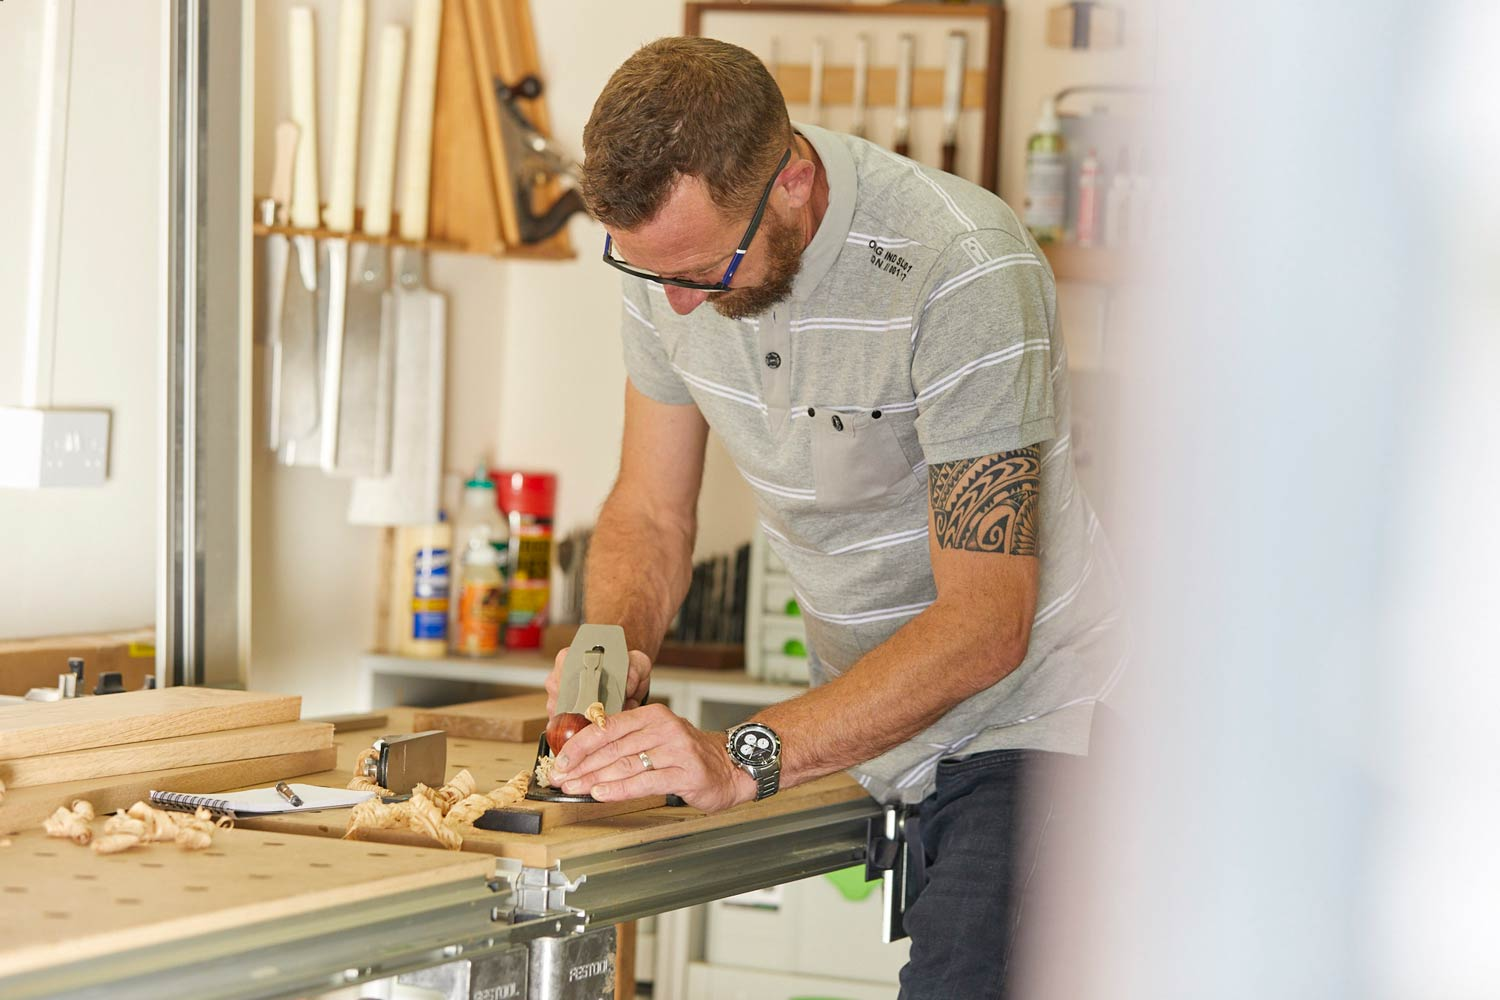 https://richardpearcewoodwork.com/wp-content/uploads/sites/6/2017/09/Richard-Pearce-working-in-workshop-woodwork-joinery-cornwall.jpg